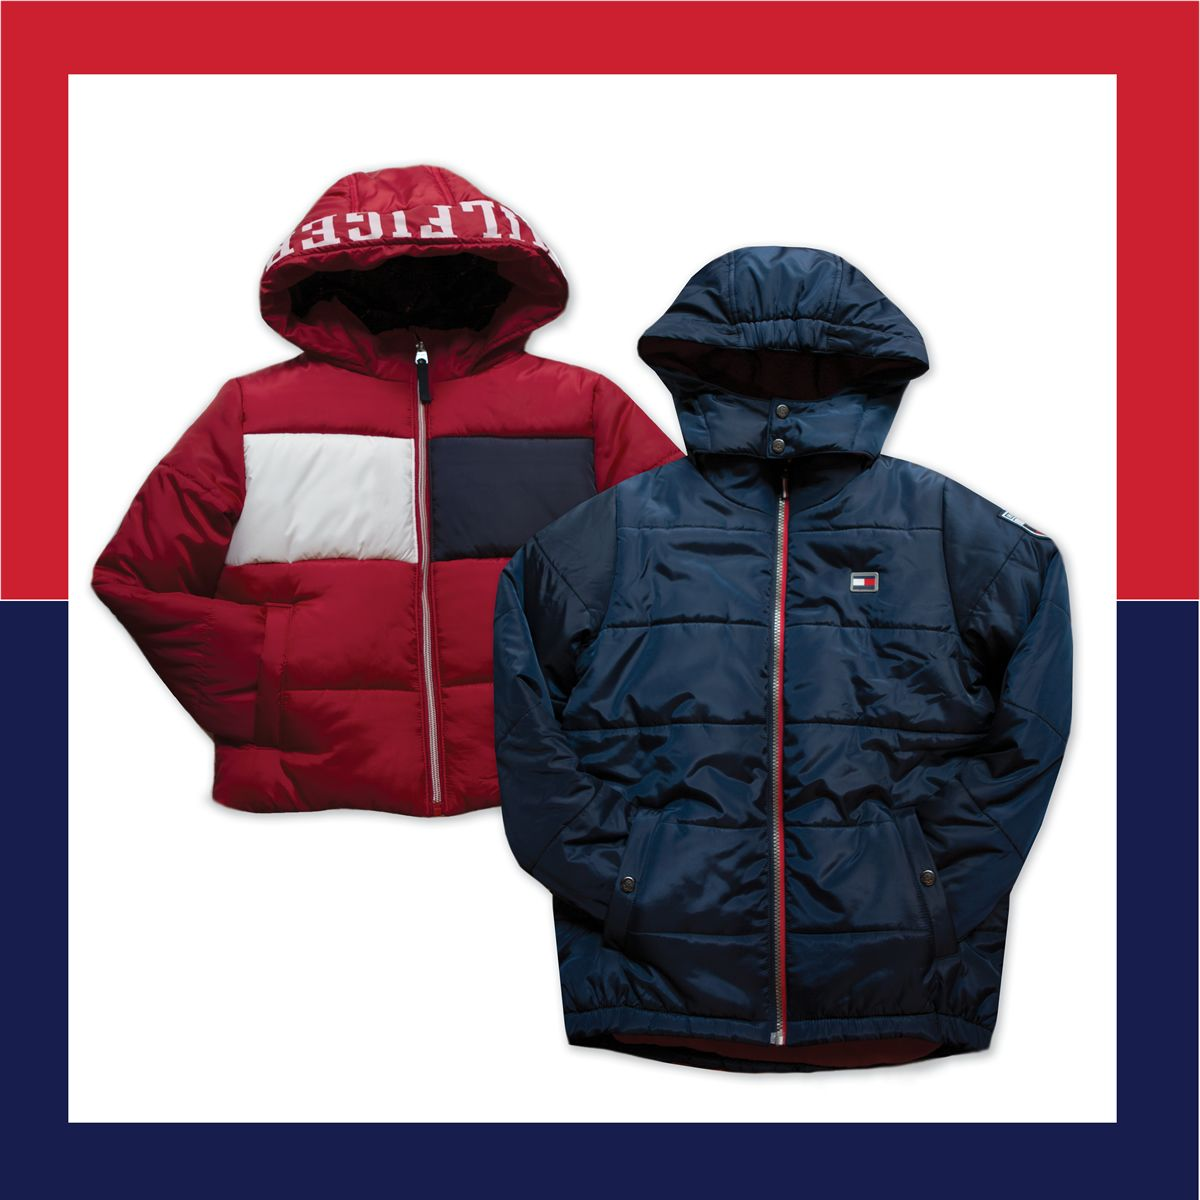 100% authentic 40f77 7c418 Coats & Jackets Tommy Hilfiger Kids' & Baby Clothes - Macy's